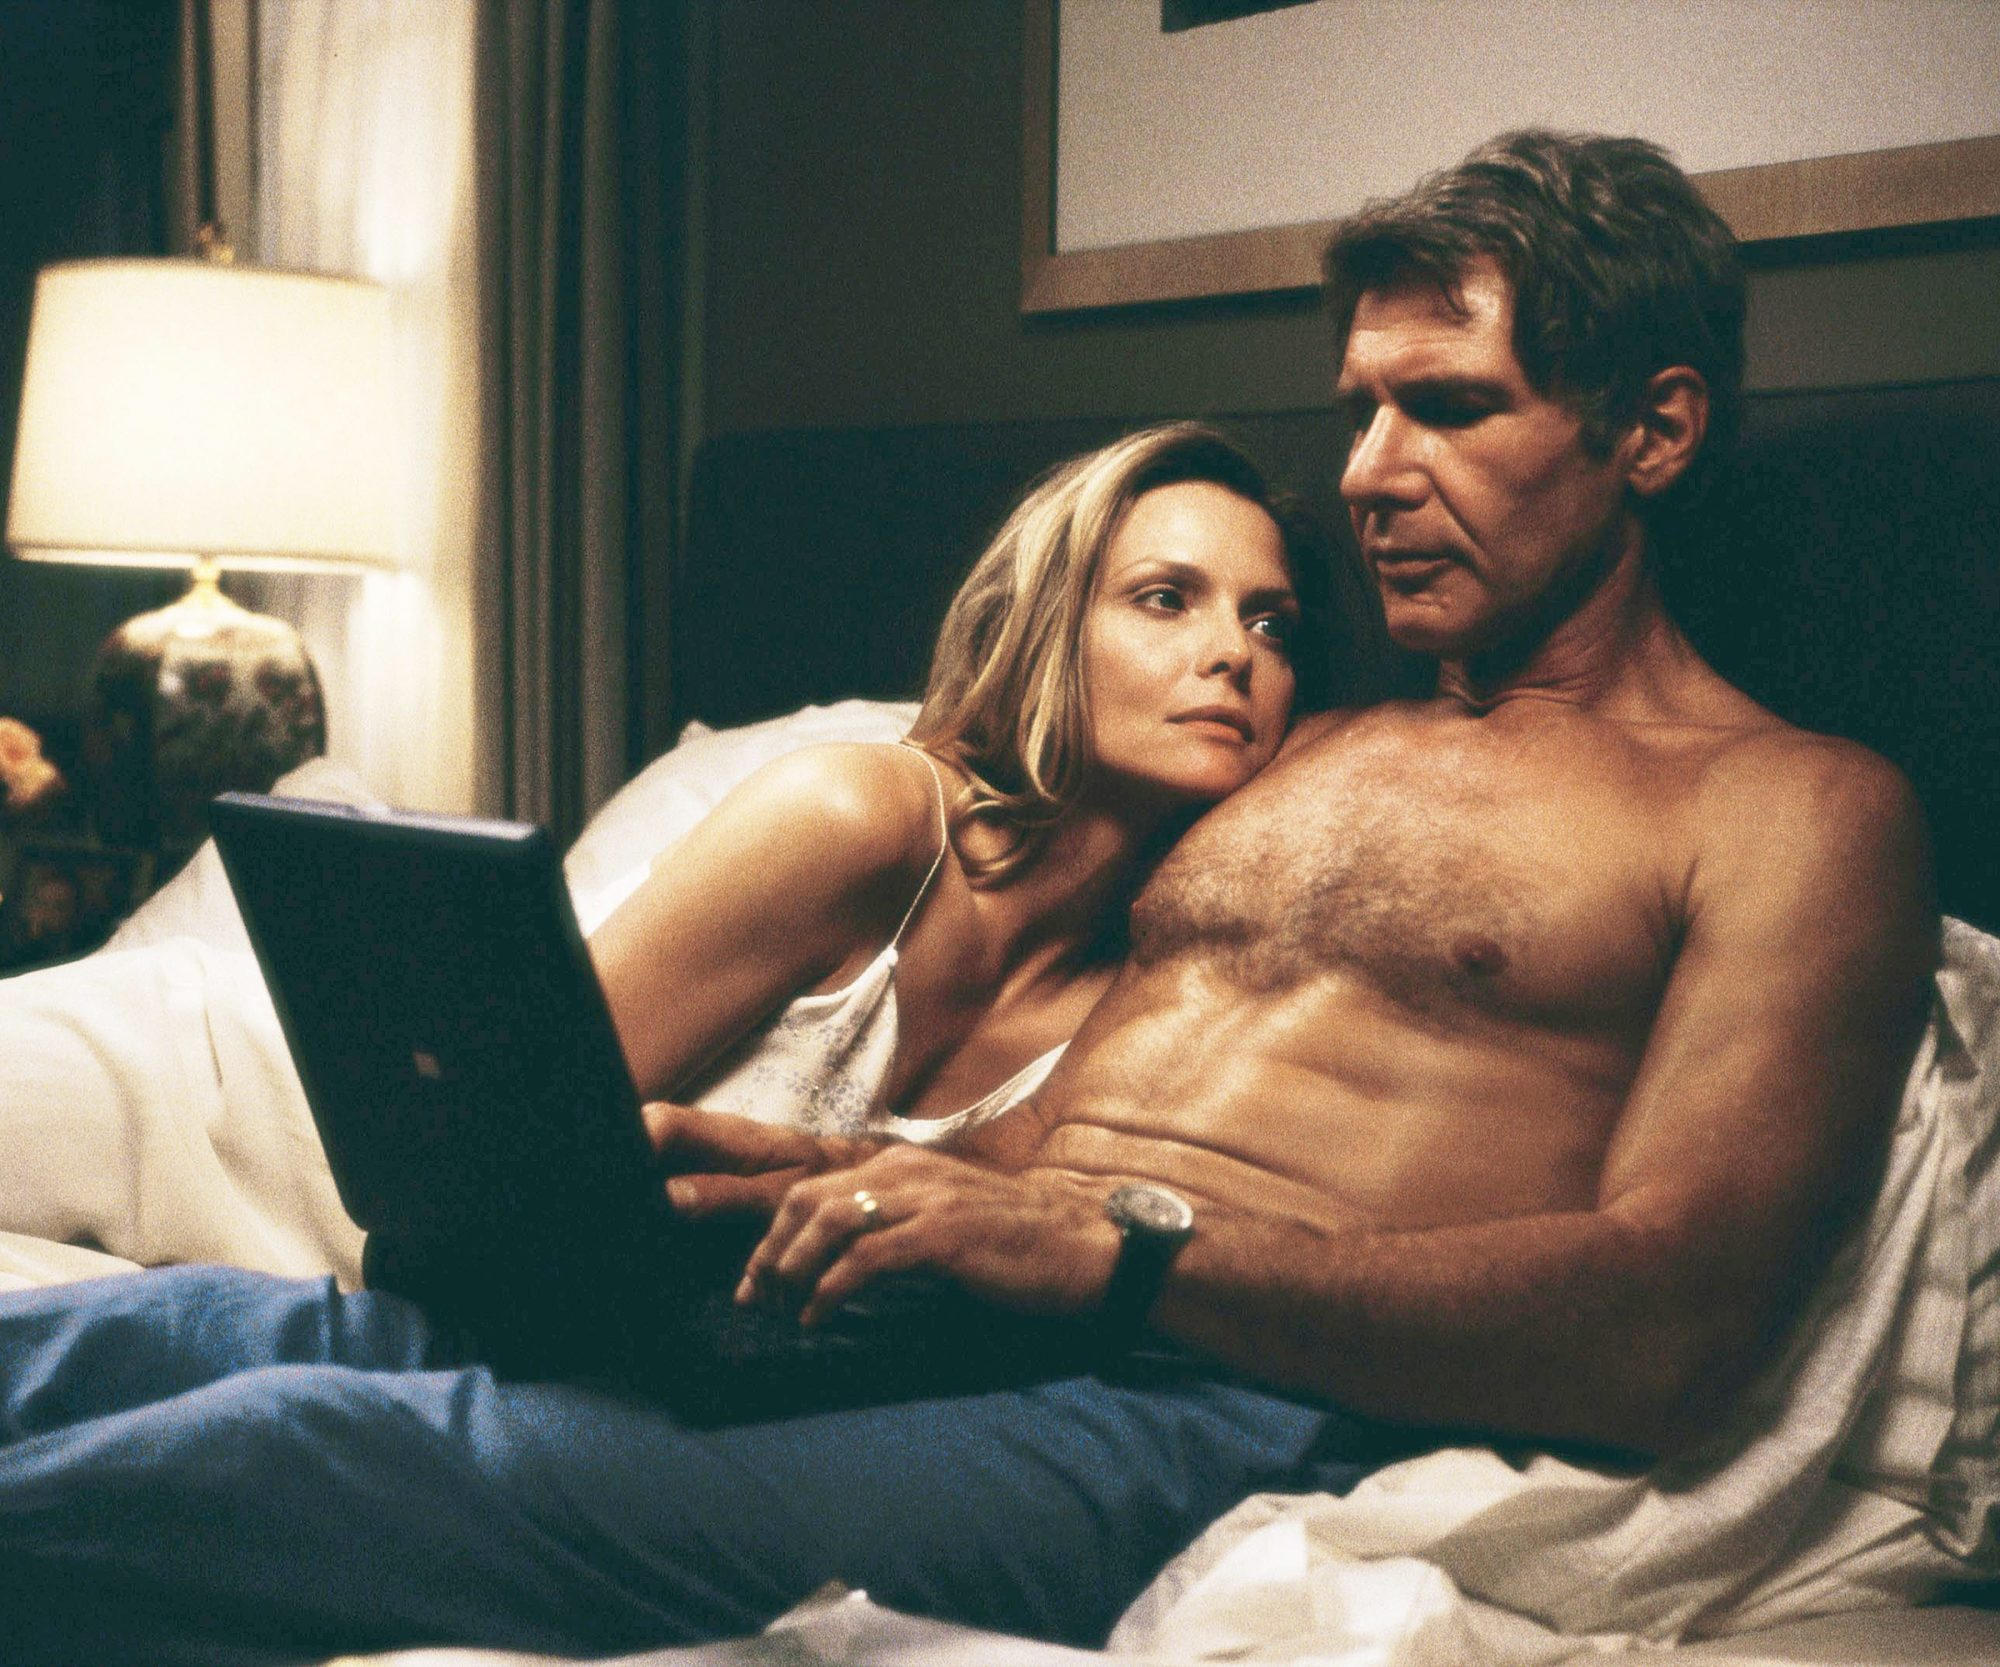 Harrison Ford shirtless